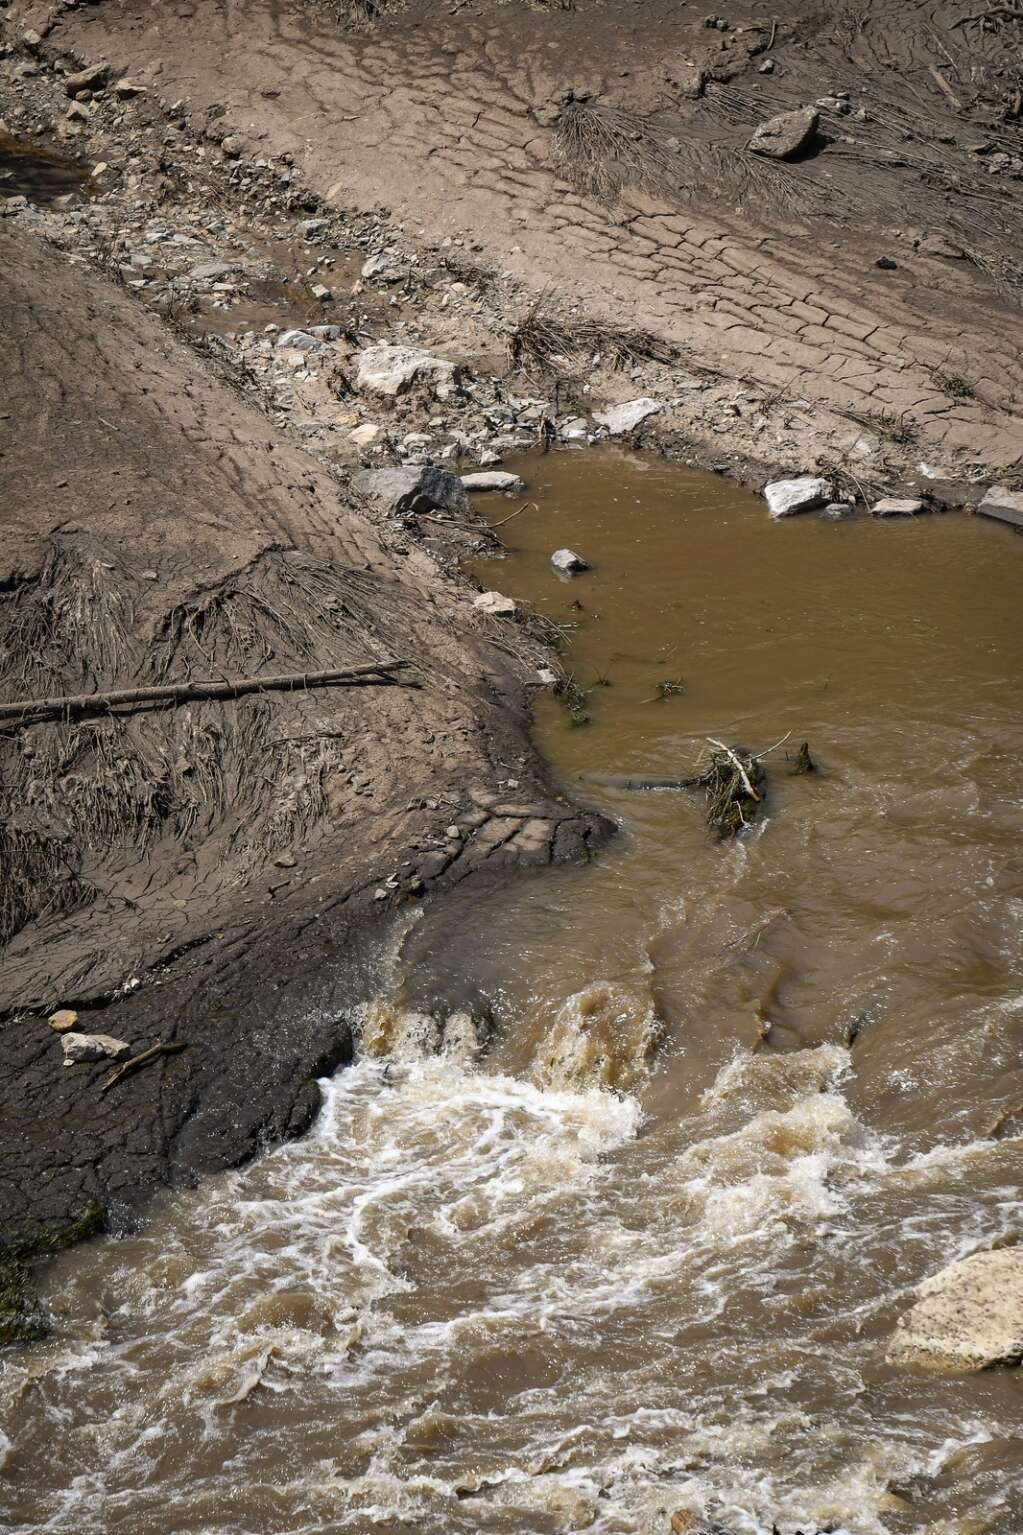 Mud, rocks and debris block a portion of the Colorado River near MM 129 after recent rain caused mudslides in Glenwood Canyon.  |Chelsea Self / Post Independent